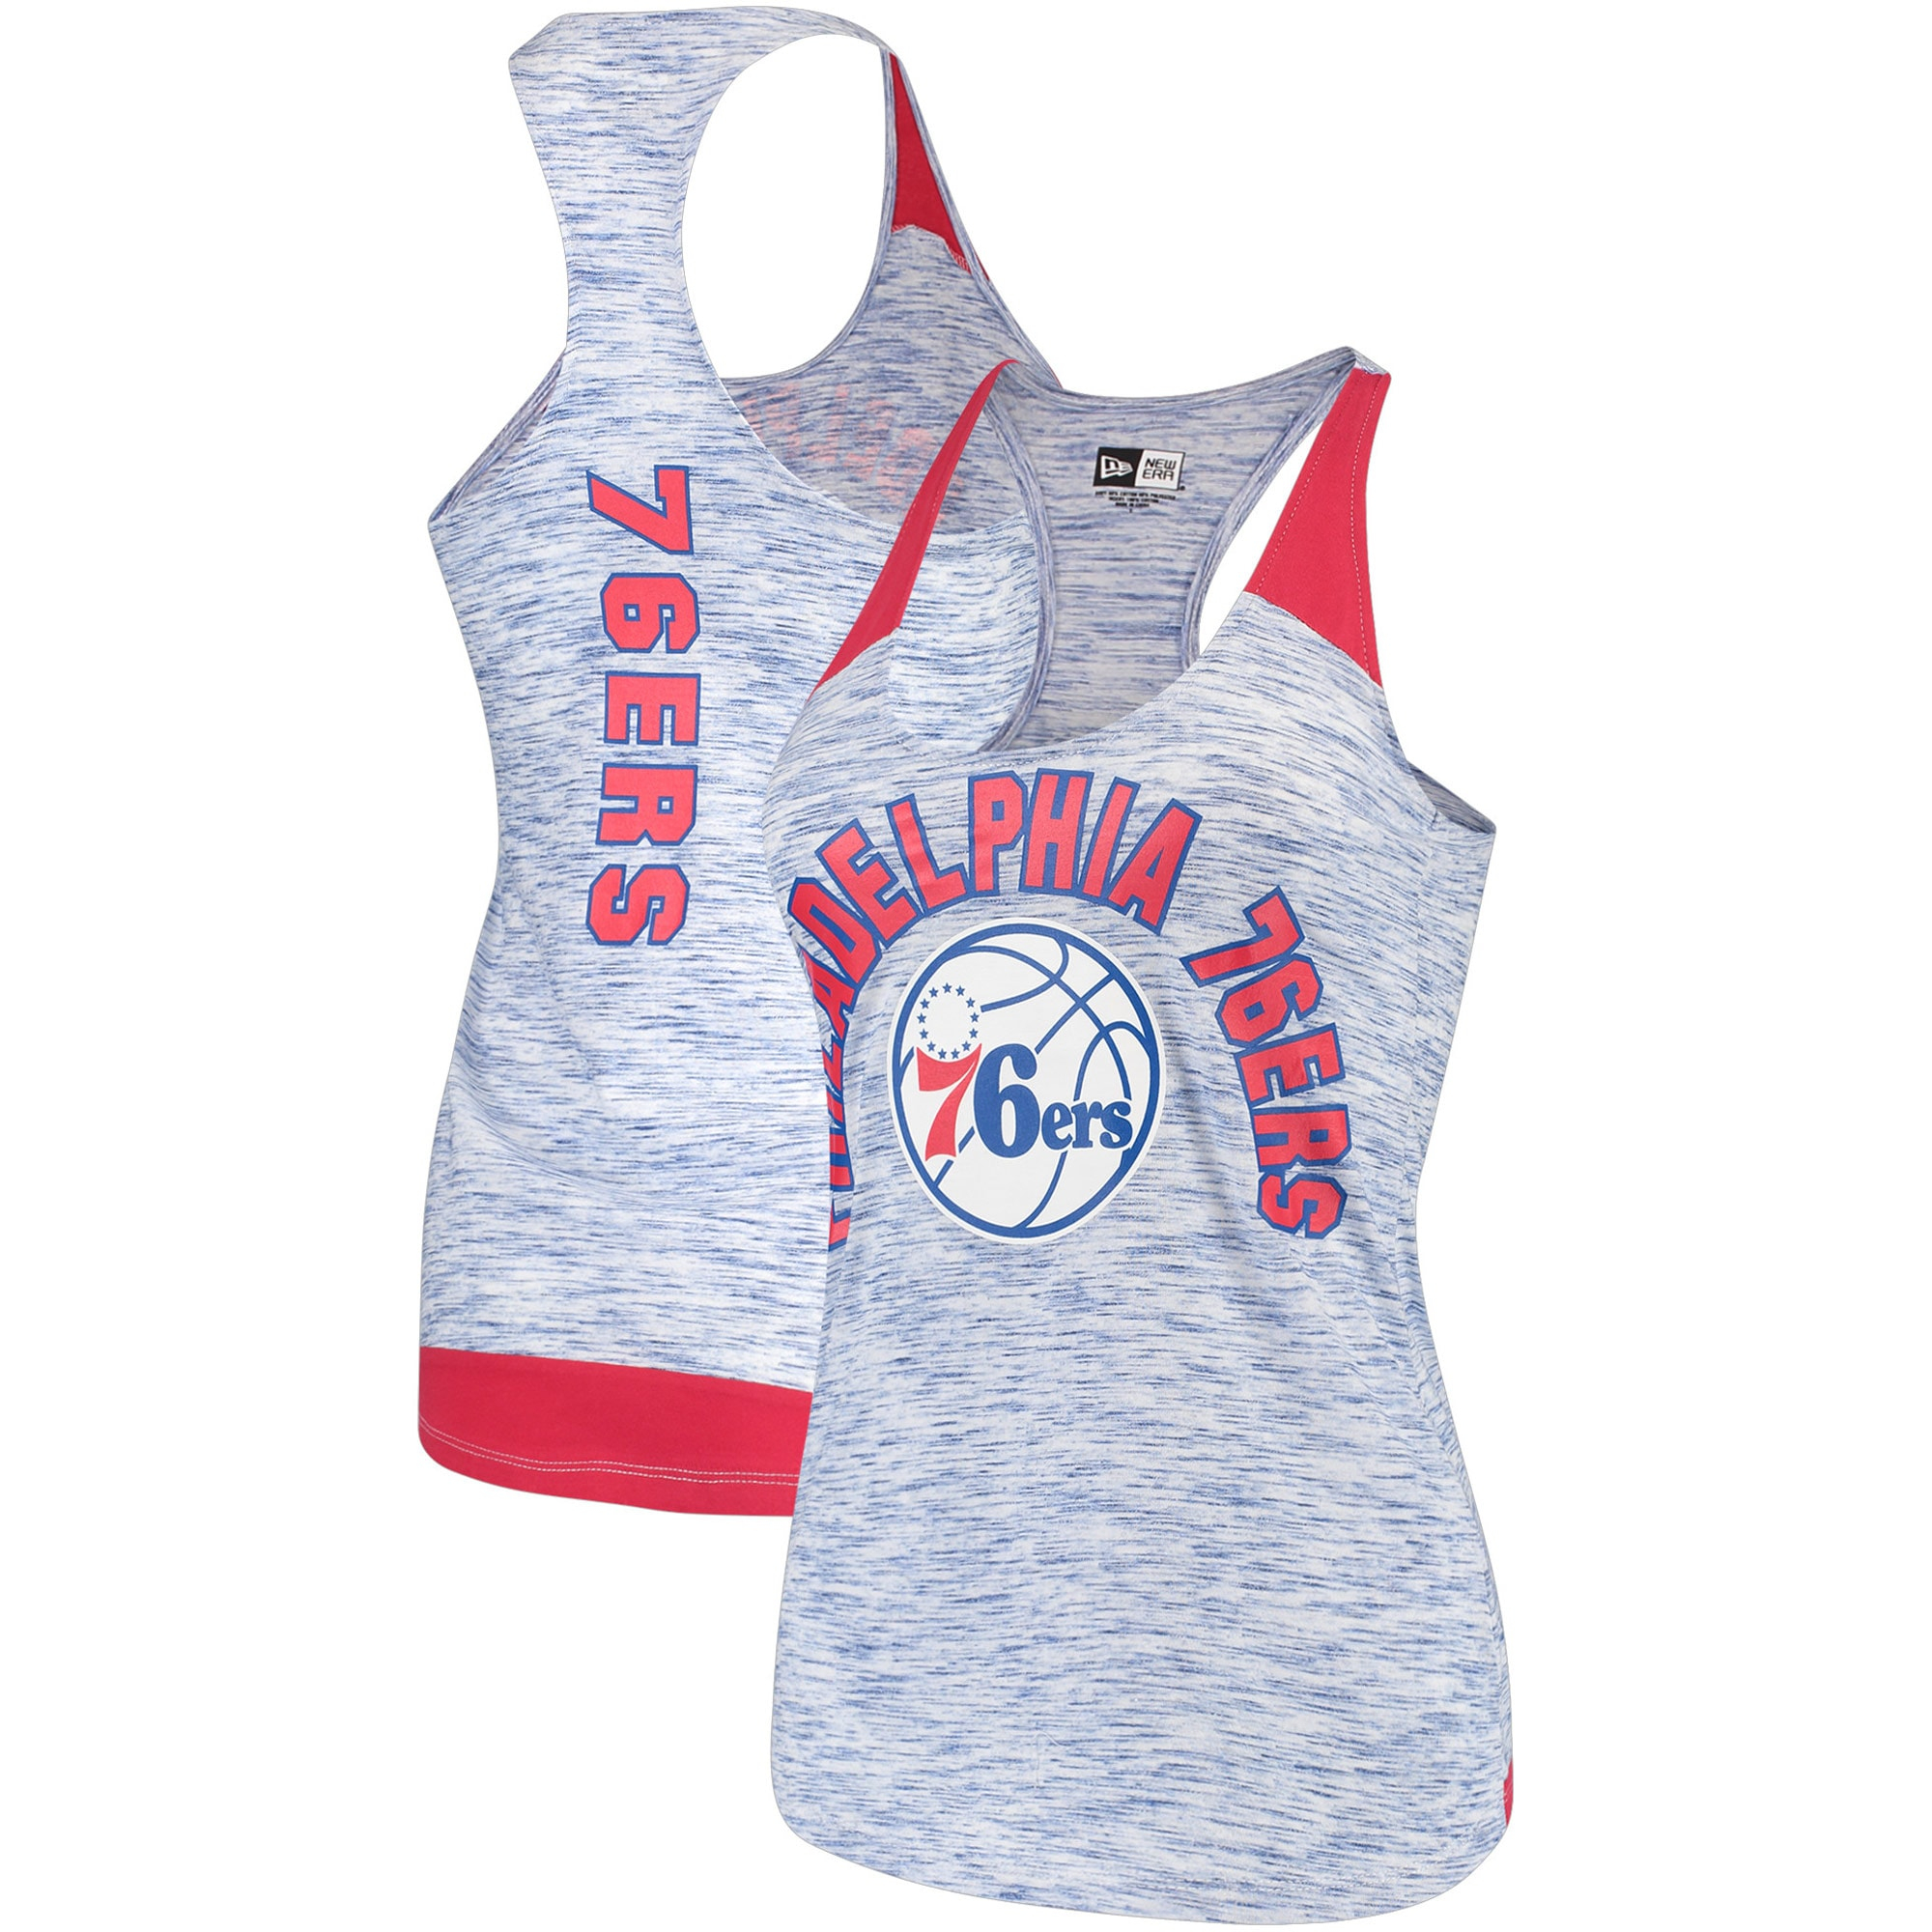 Philadelphia 76ers New Era Women's Space Dye Racer Back Tank Top - Royal/Red